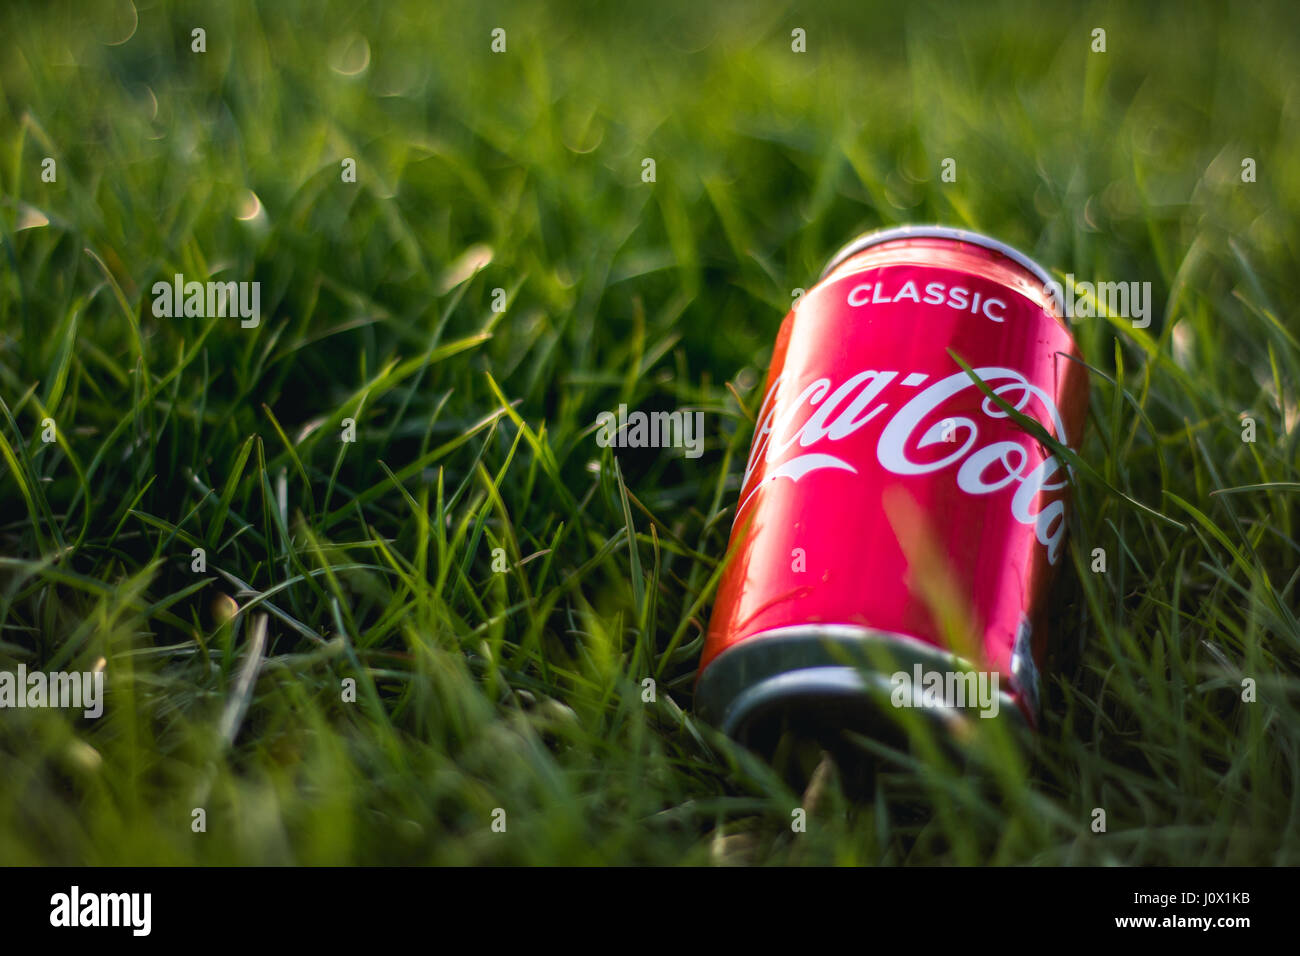 ae56b938 Coca Cola Litter Stock Photos & Coca Cola Litter Stock Images - Alamy